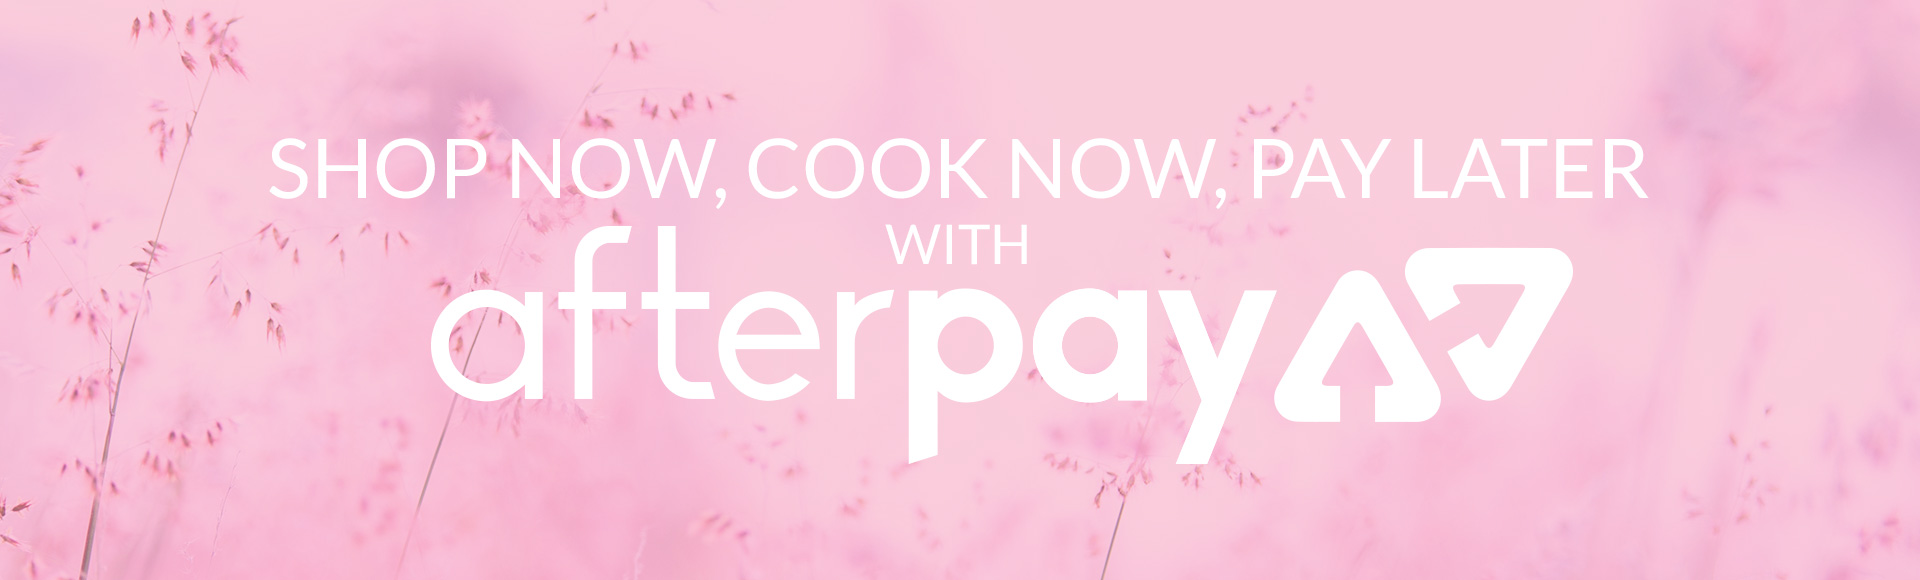 Shop Now. Cook Now. Pay Later with Afterpay